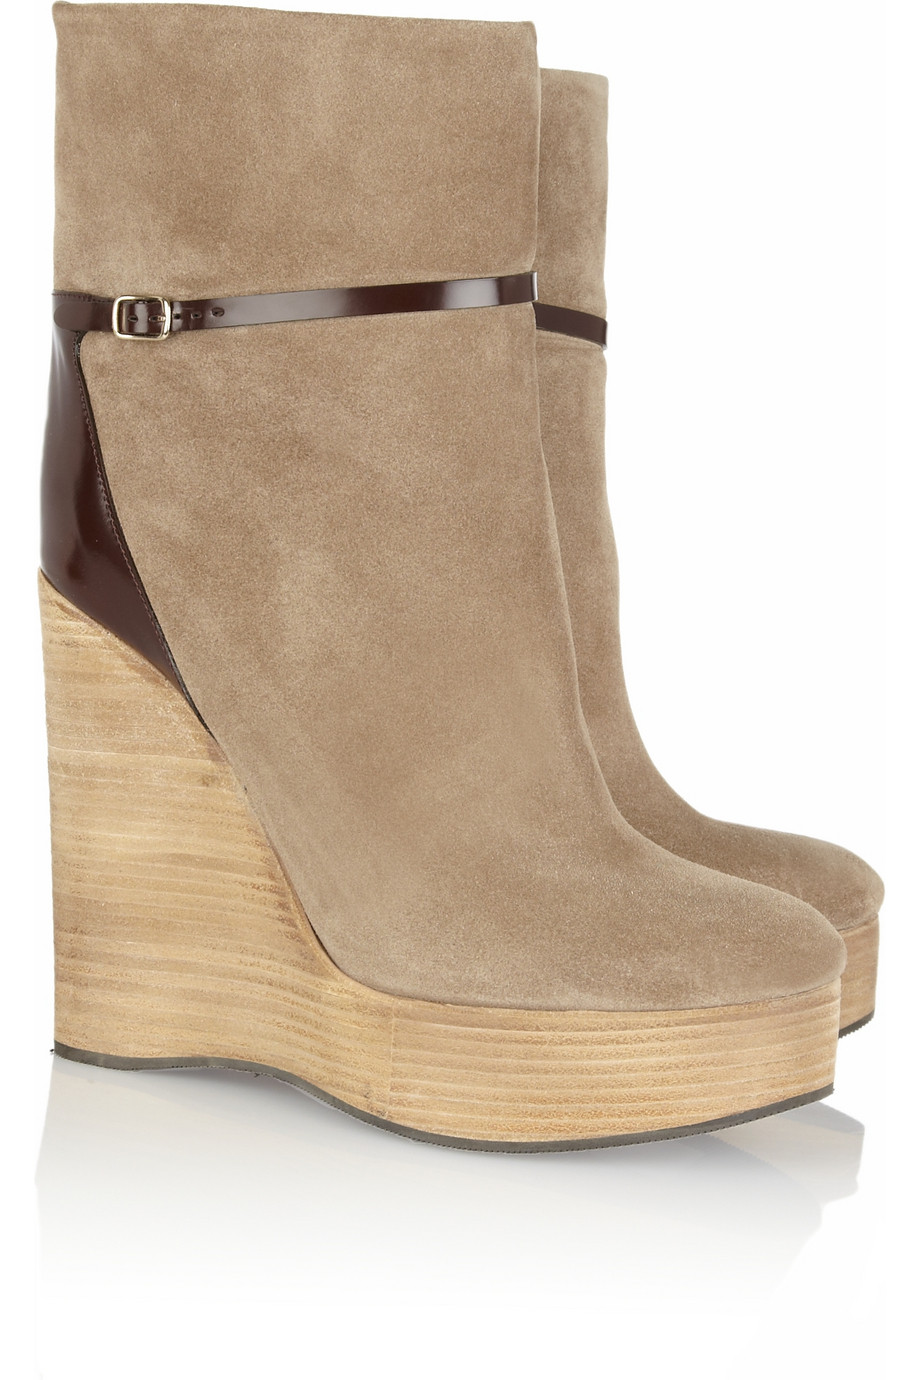 Chloé Suede Wedge Ankle Boots in Natural | Lyst